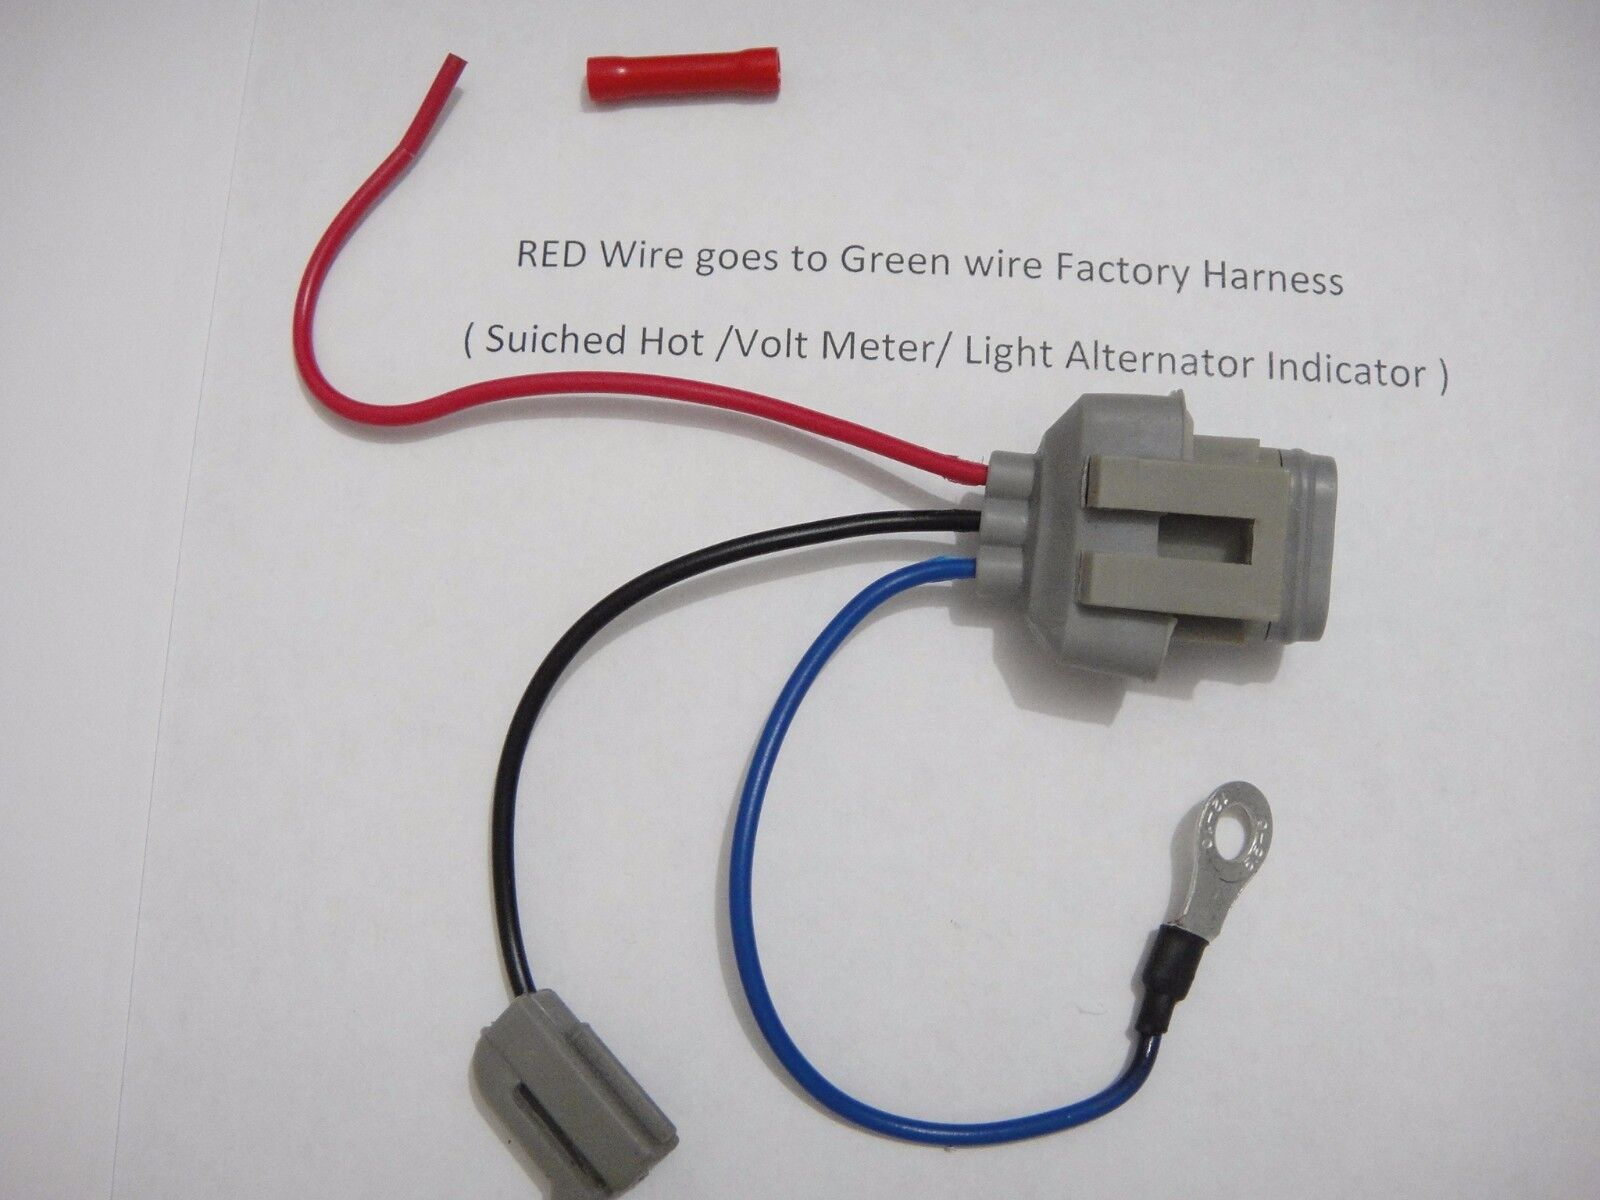 Ford Alternator Conversion Harness Wiring Diagram Will Be A Thing 3g Connector 1 Wire Rh Ebayshopkorea Com